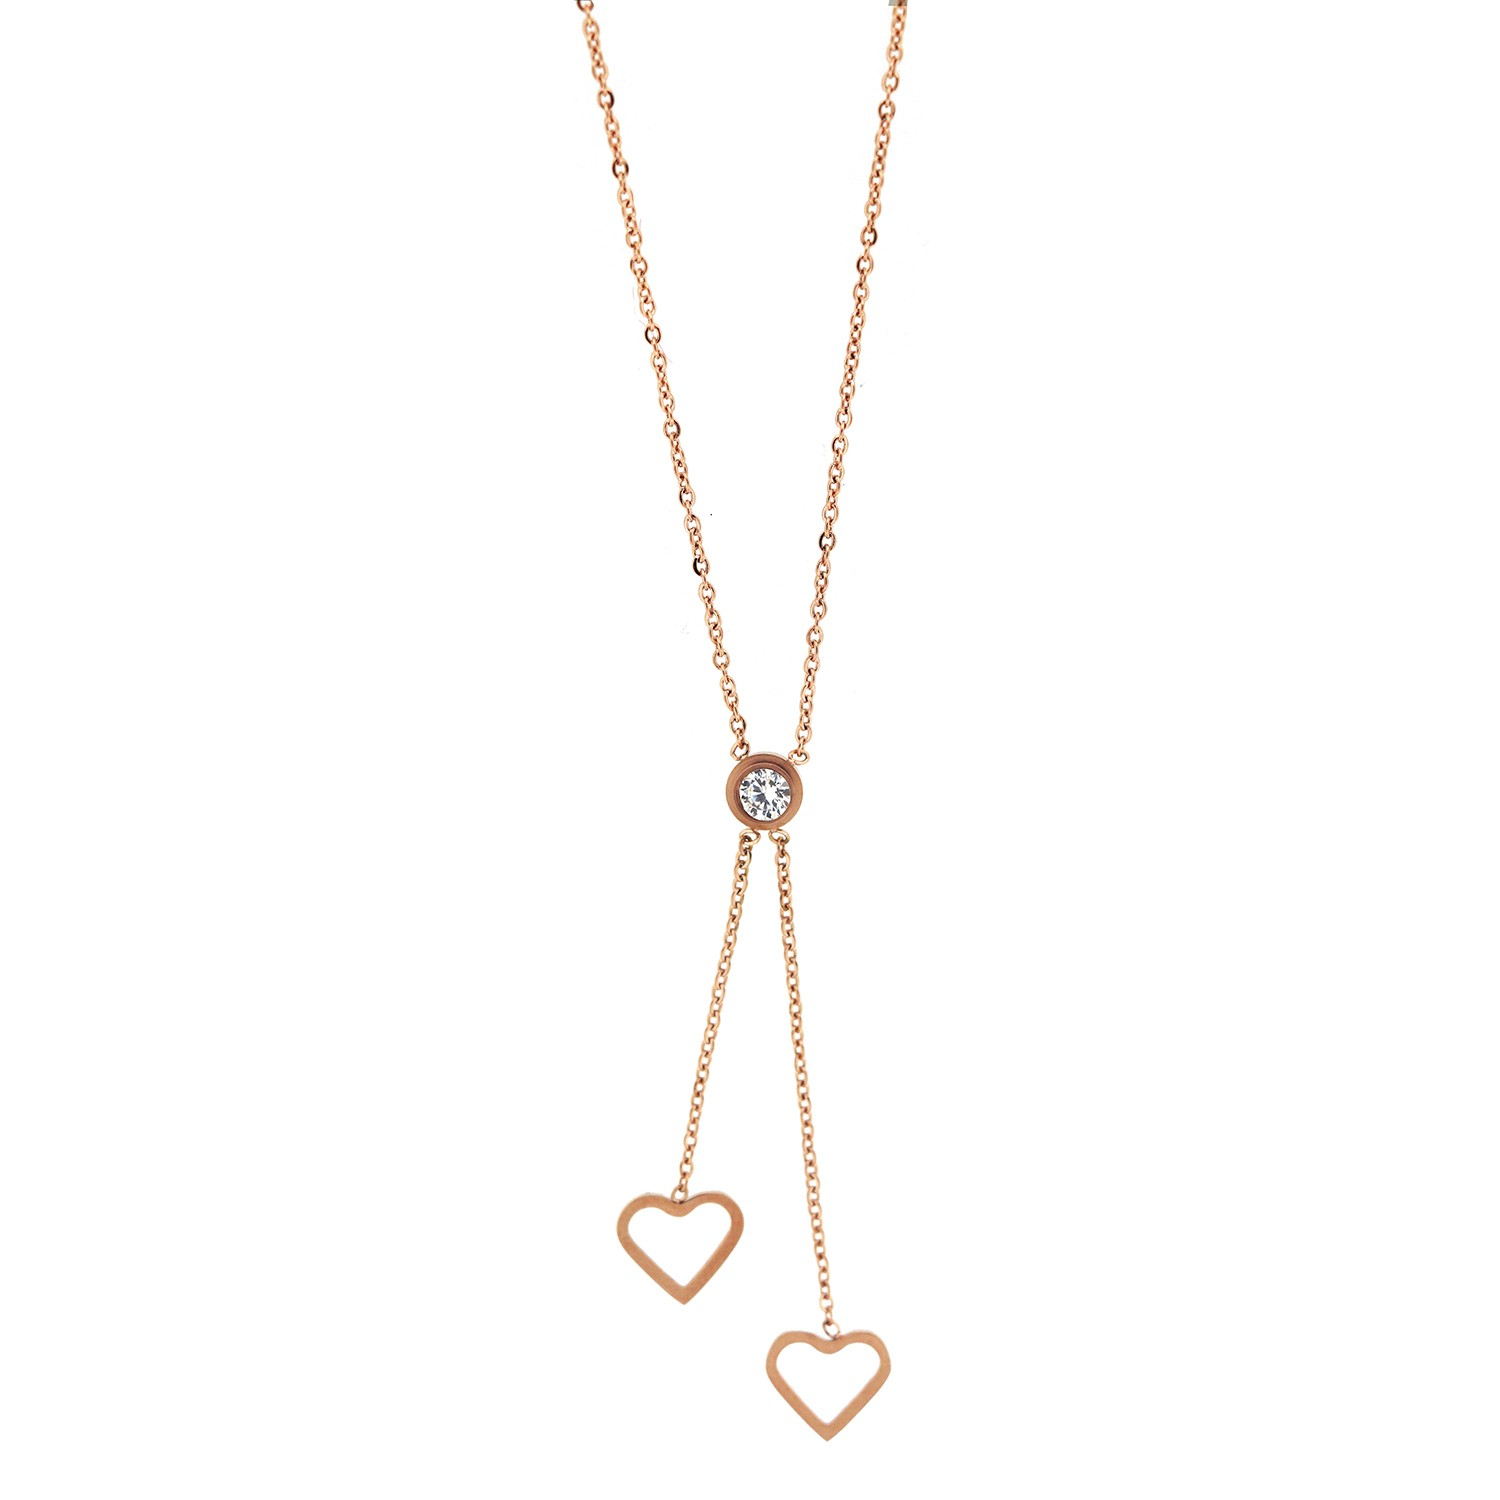 Kette Two Hearts, rosegold crystal 0